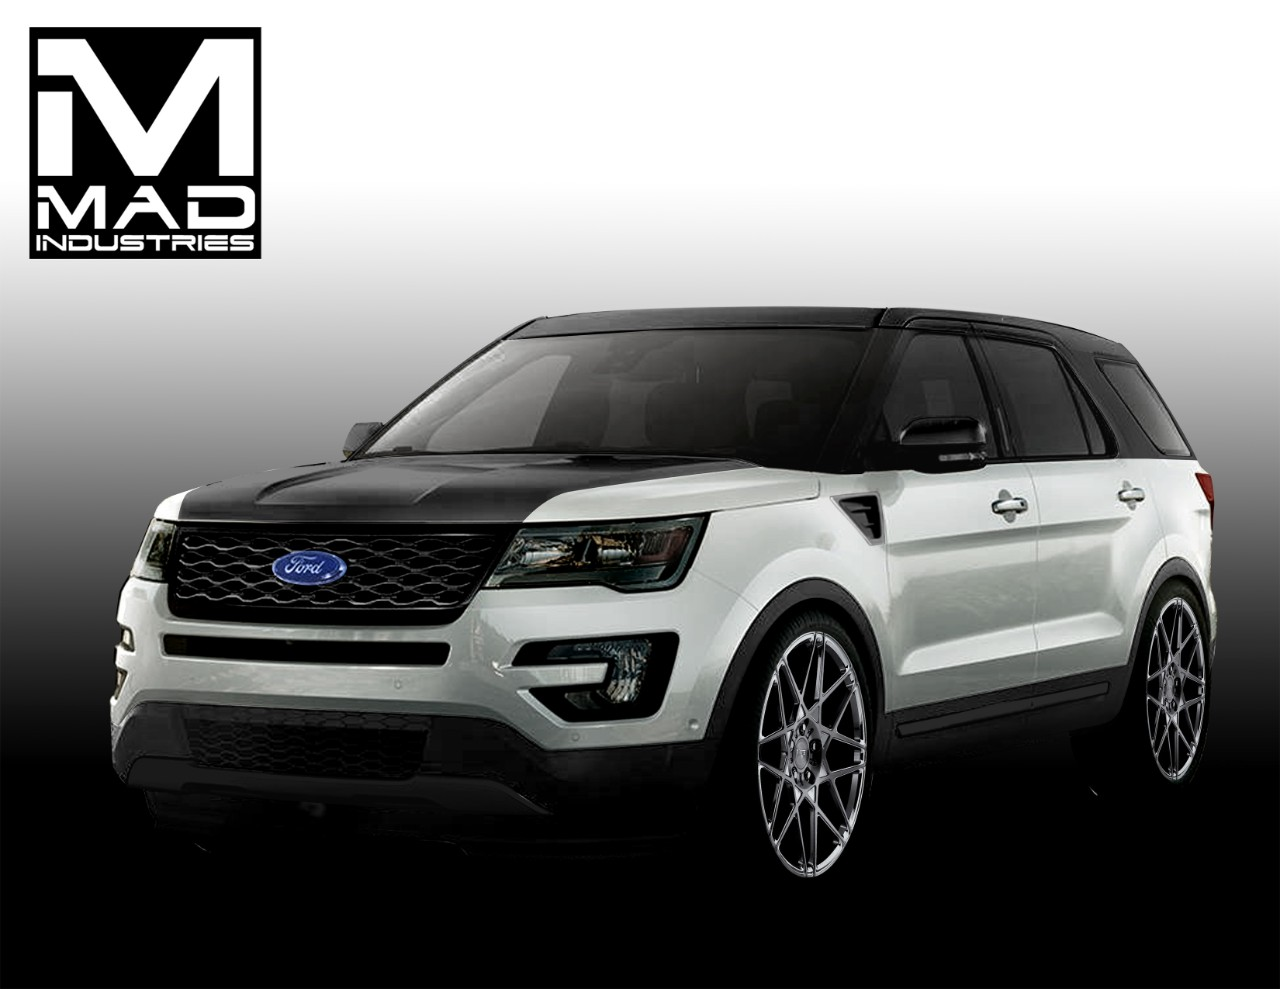 mad industries ford explorer sport concept 2015 sema - New 2015 Ford Explorer Black Color